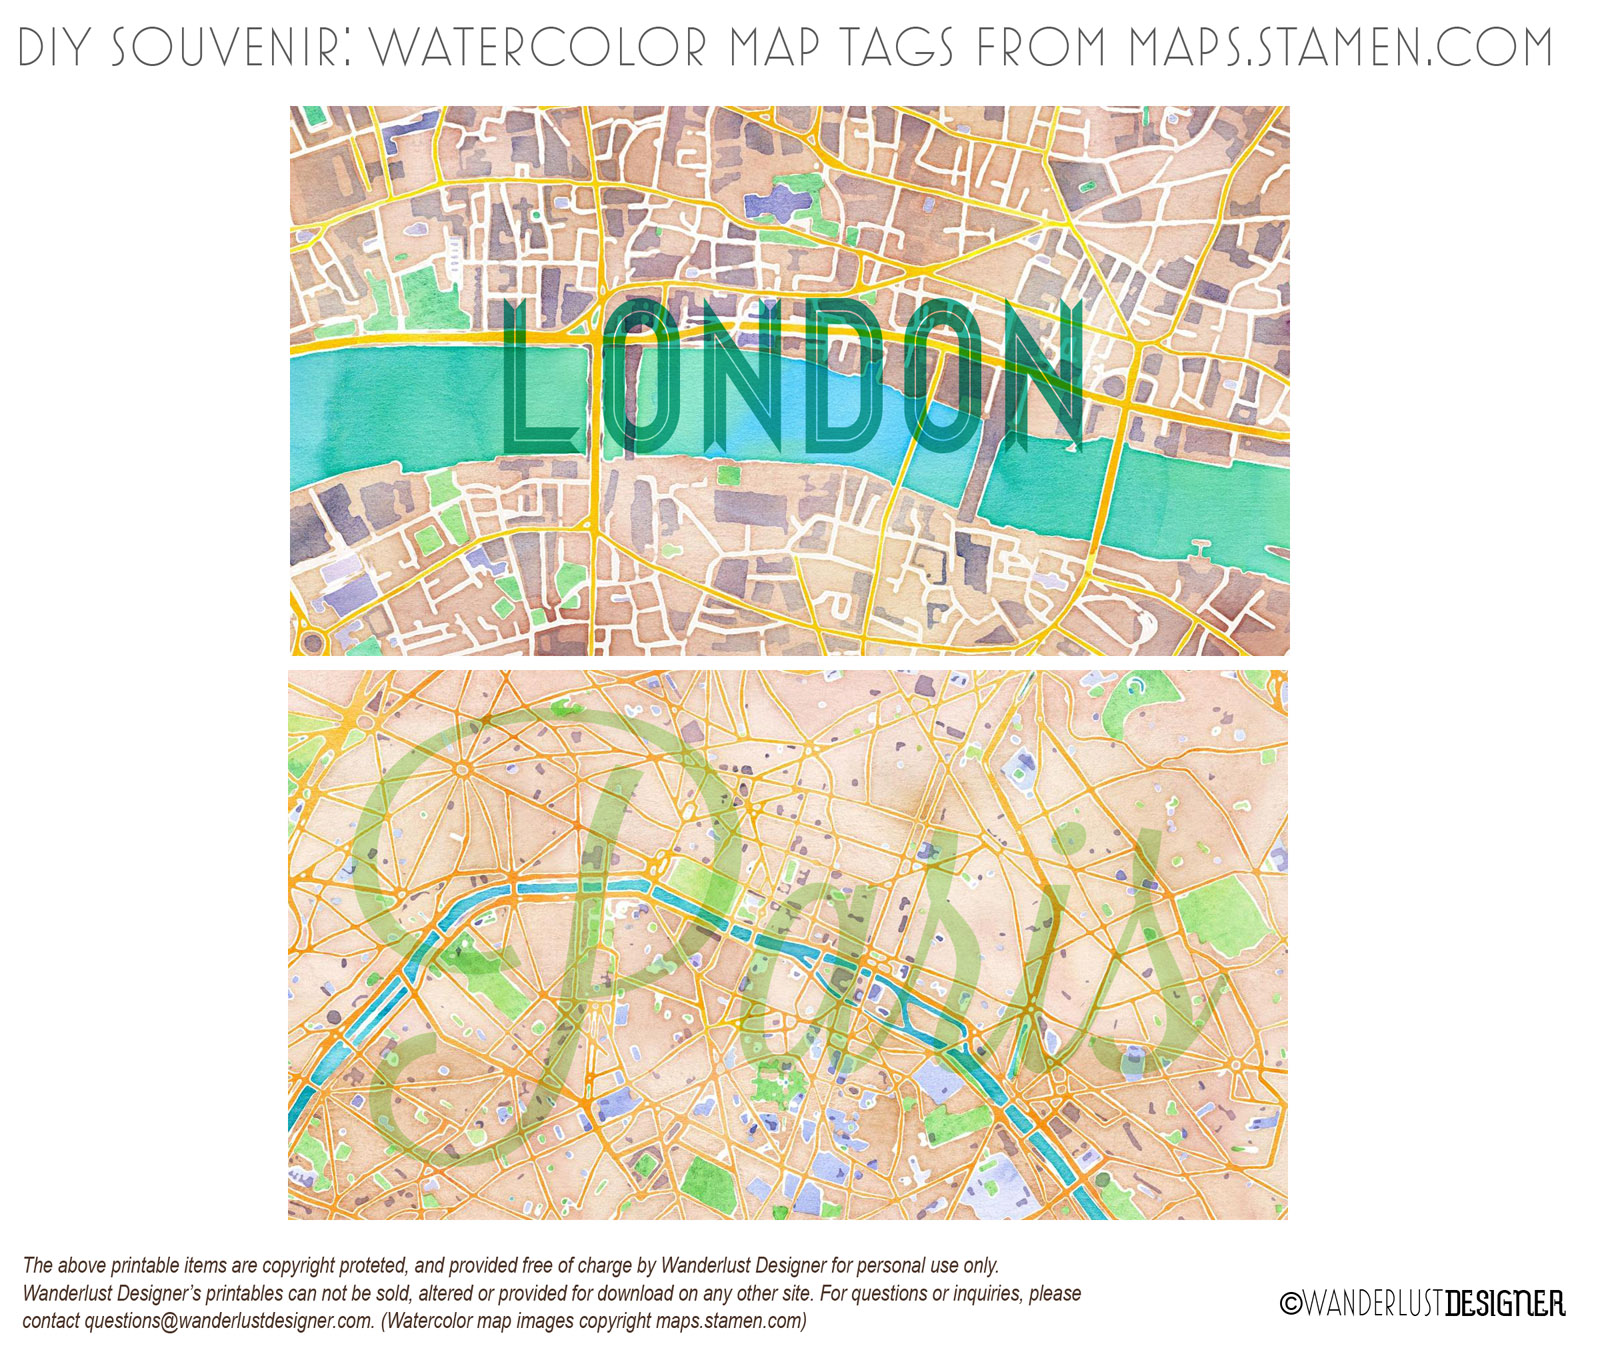 Paris and London Map Watercolor Tags (map images from maps.stamen.com)